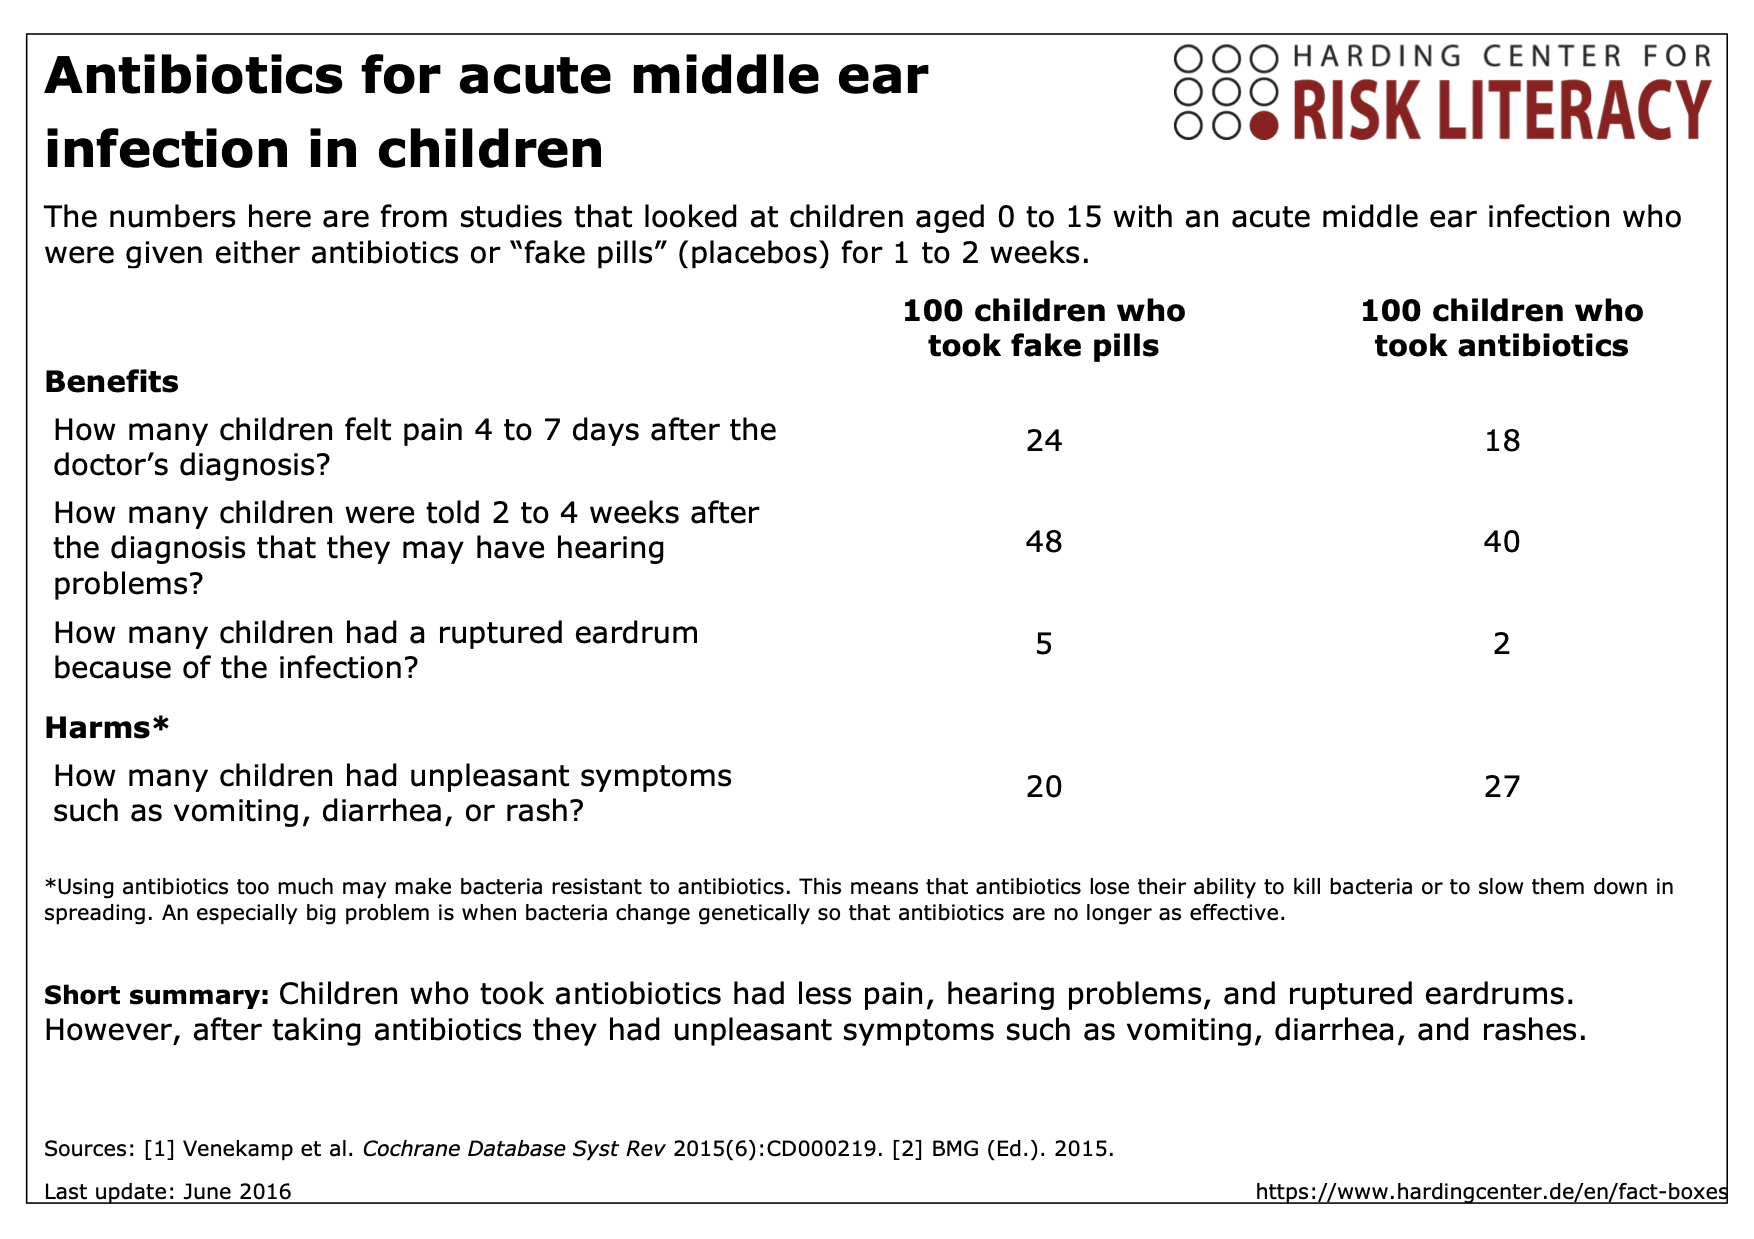 Fact box antibiotics for acute middle ear infection in children